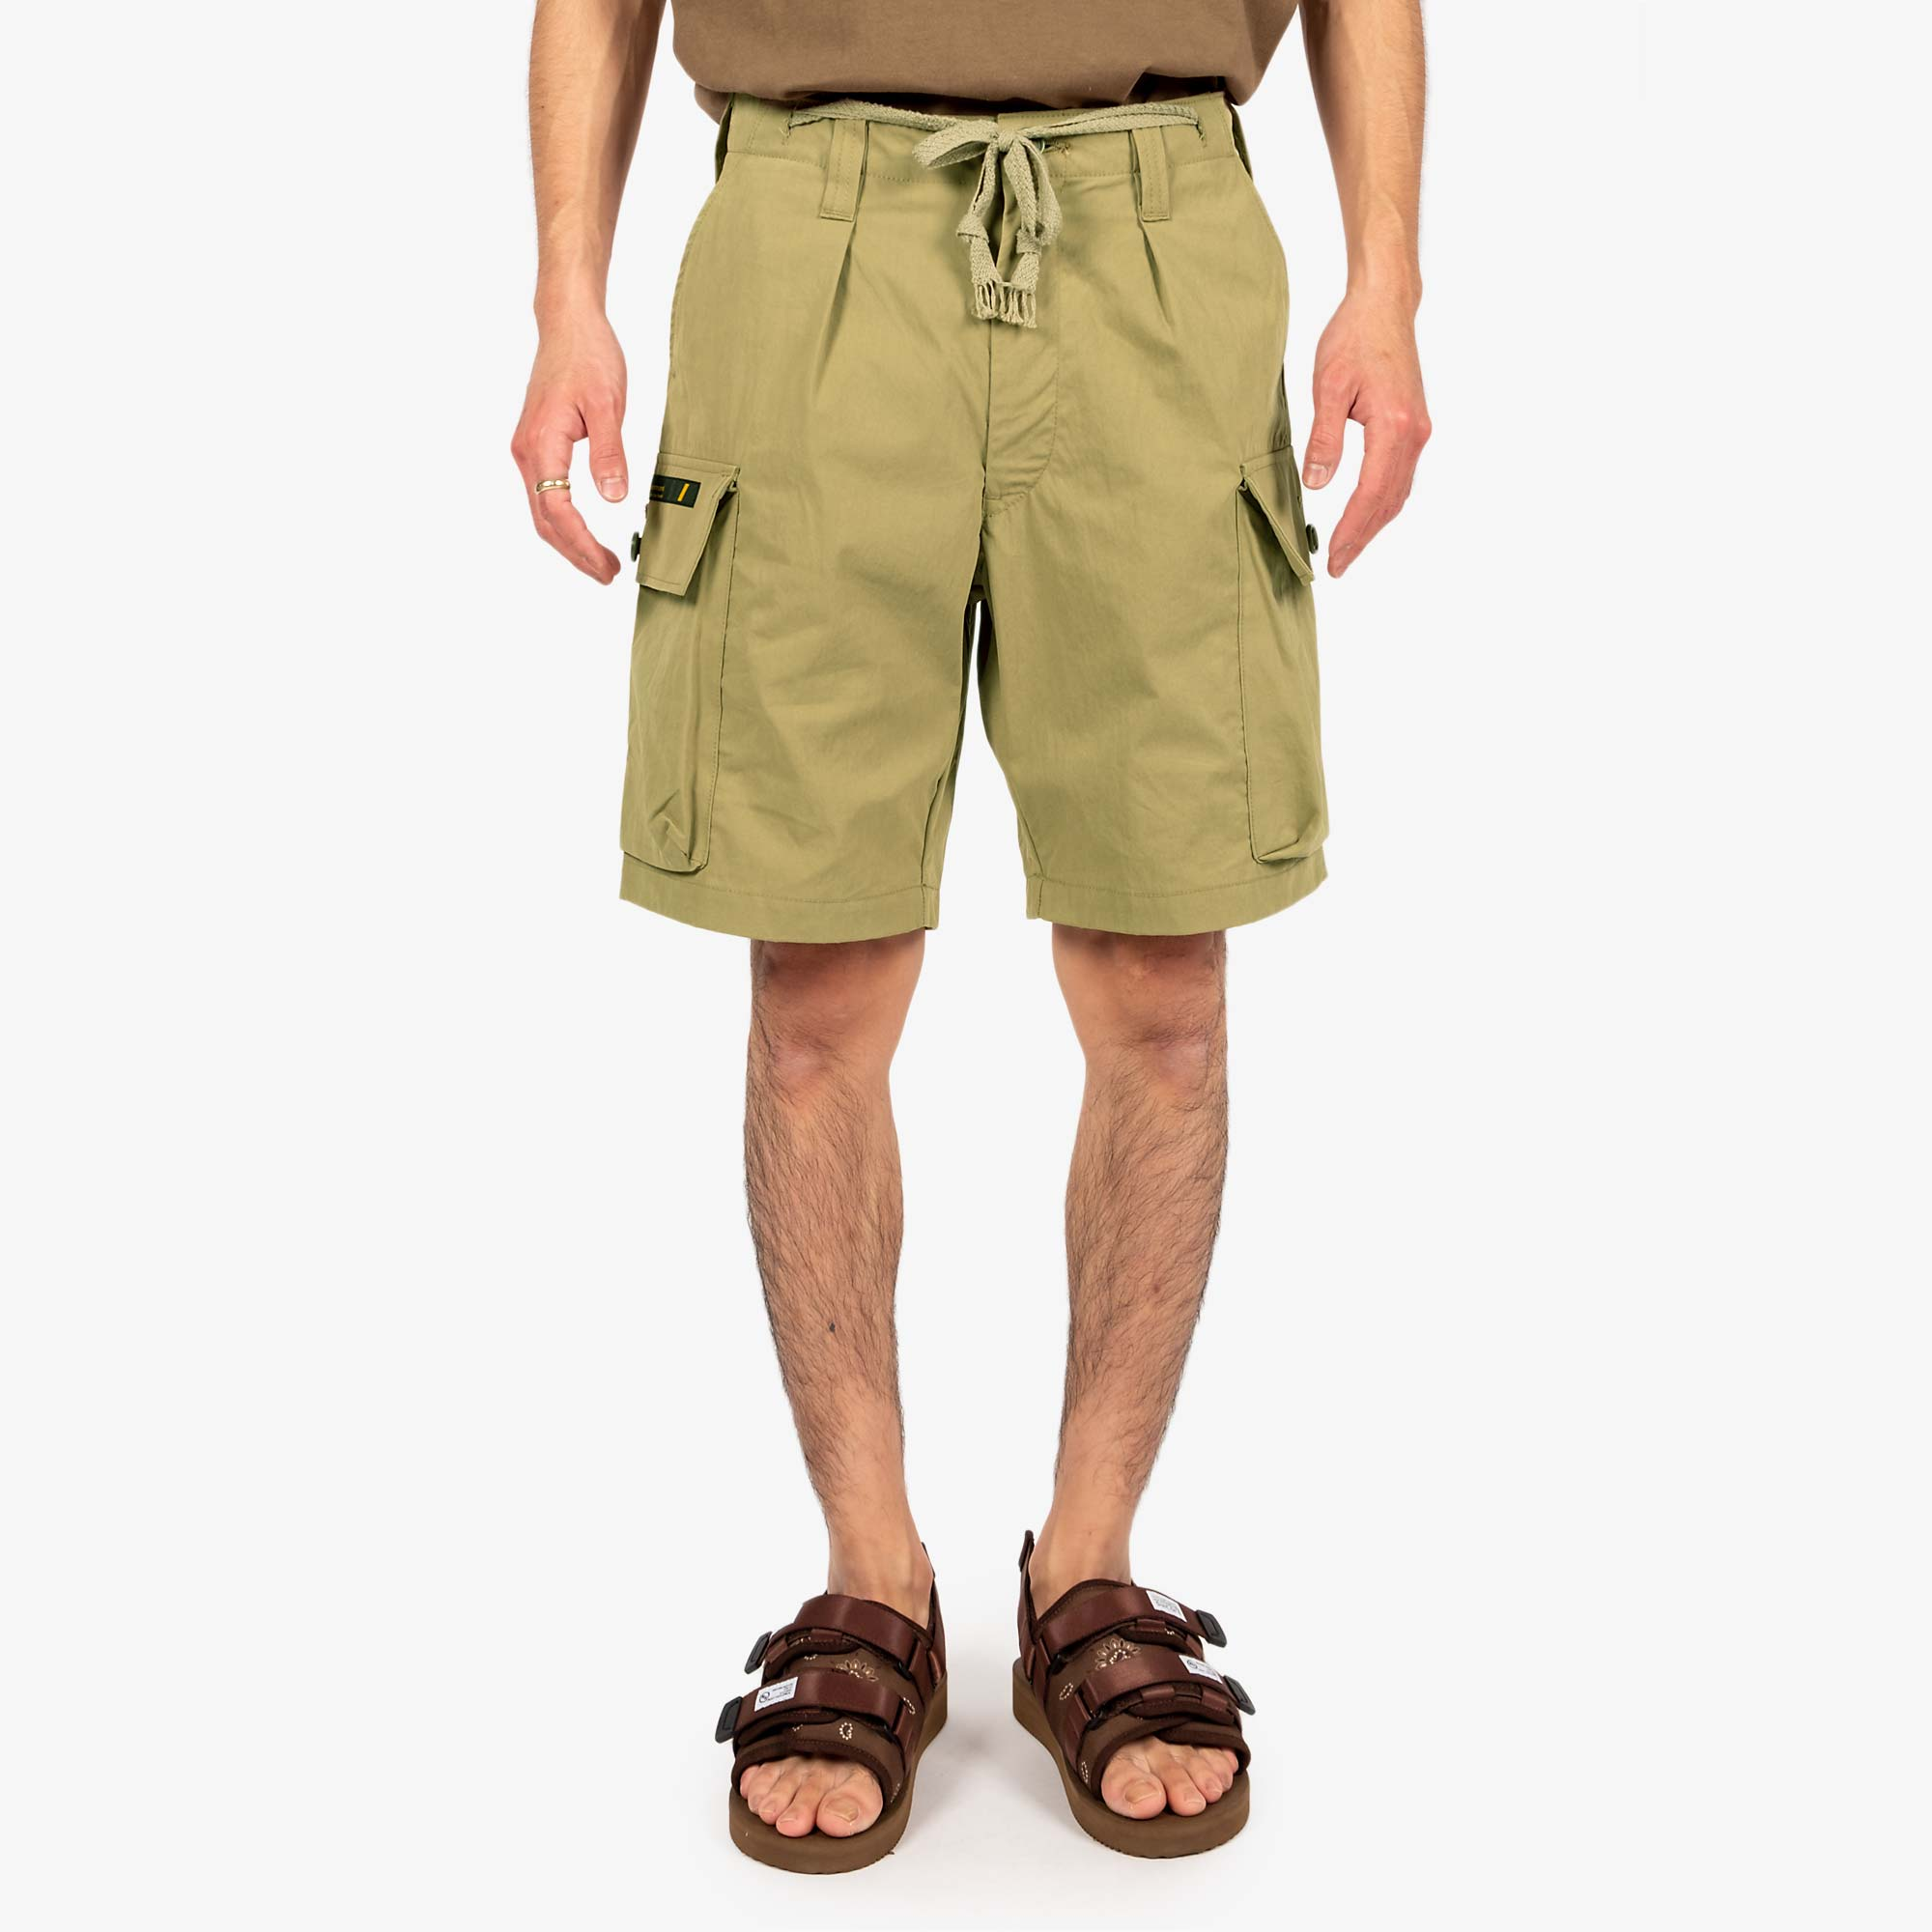 WTAPS Jungle Country Nyco Shorts - Olive Drab 8